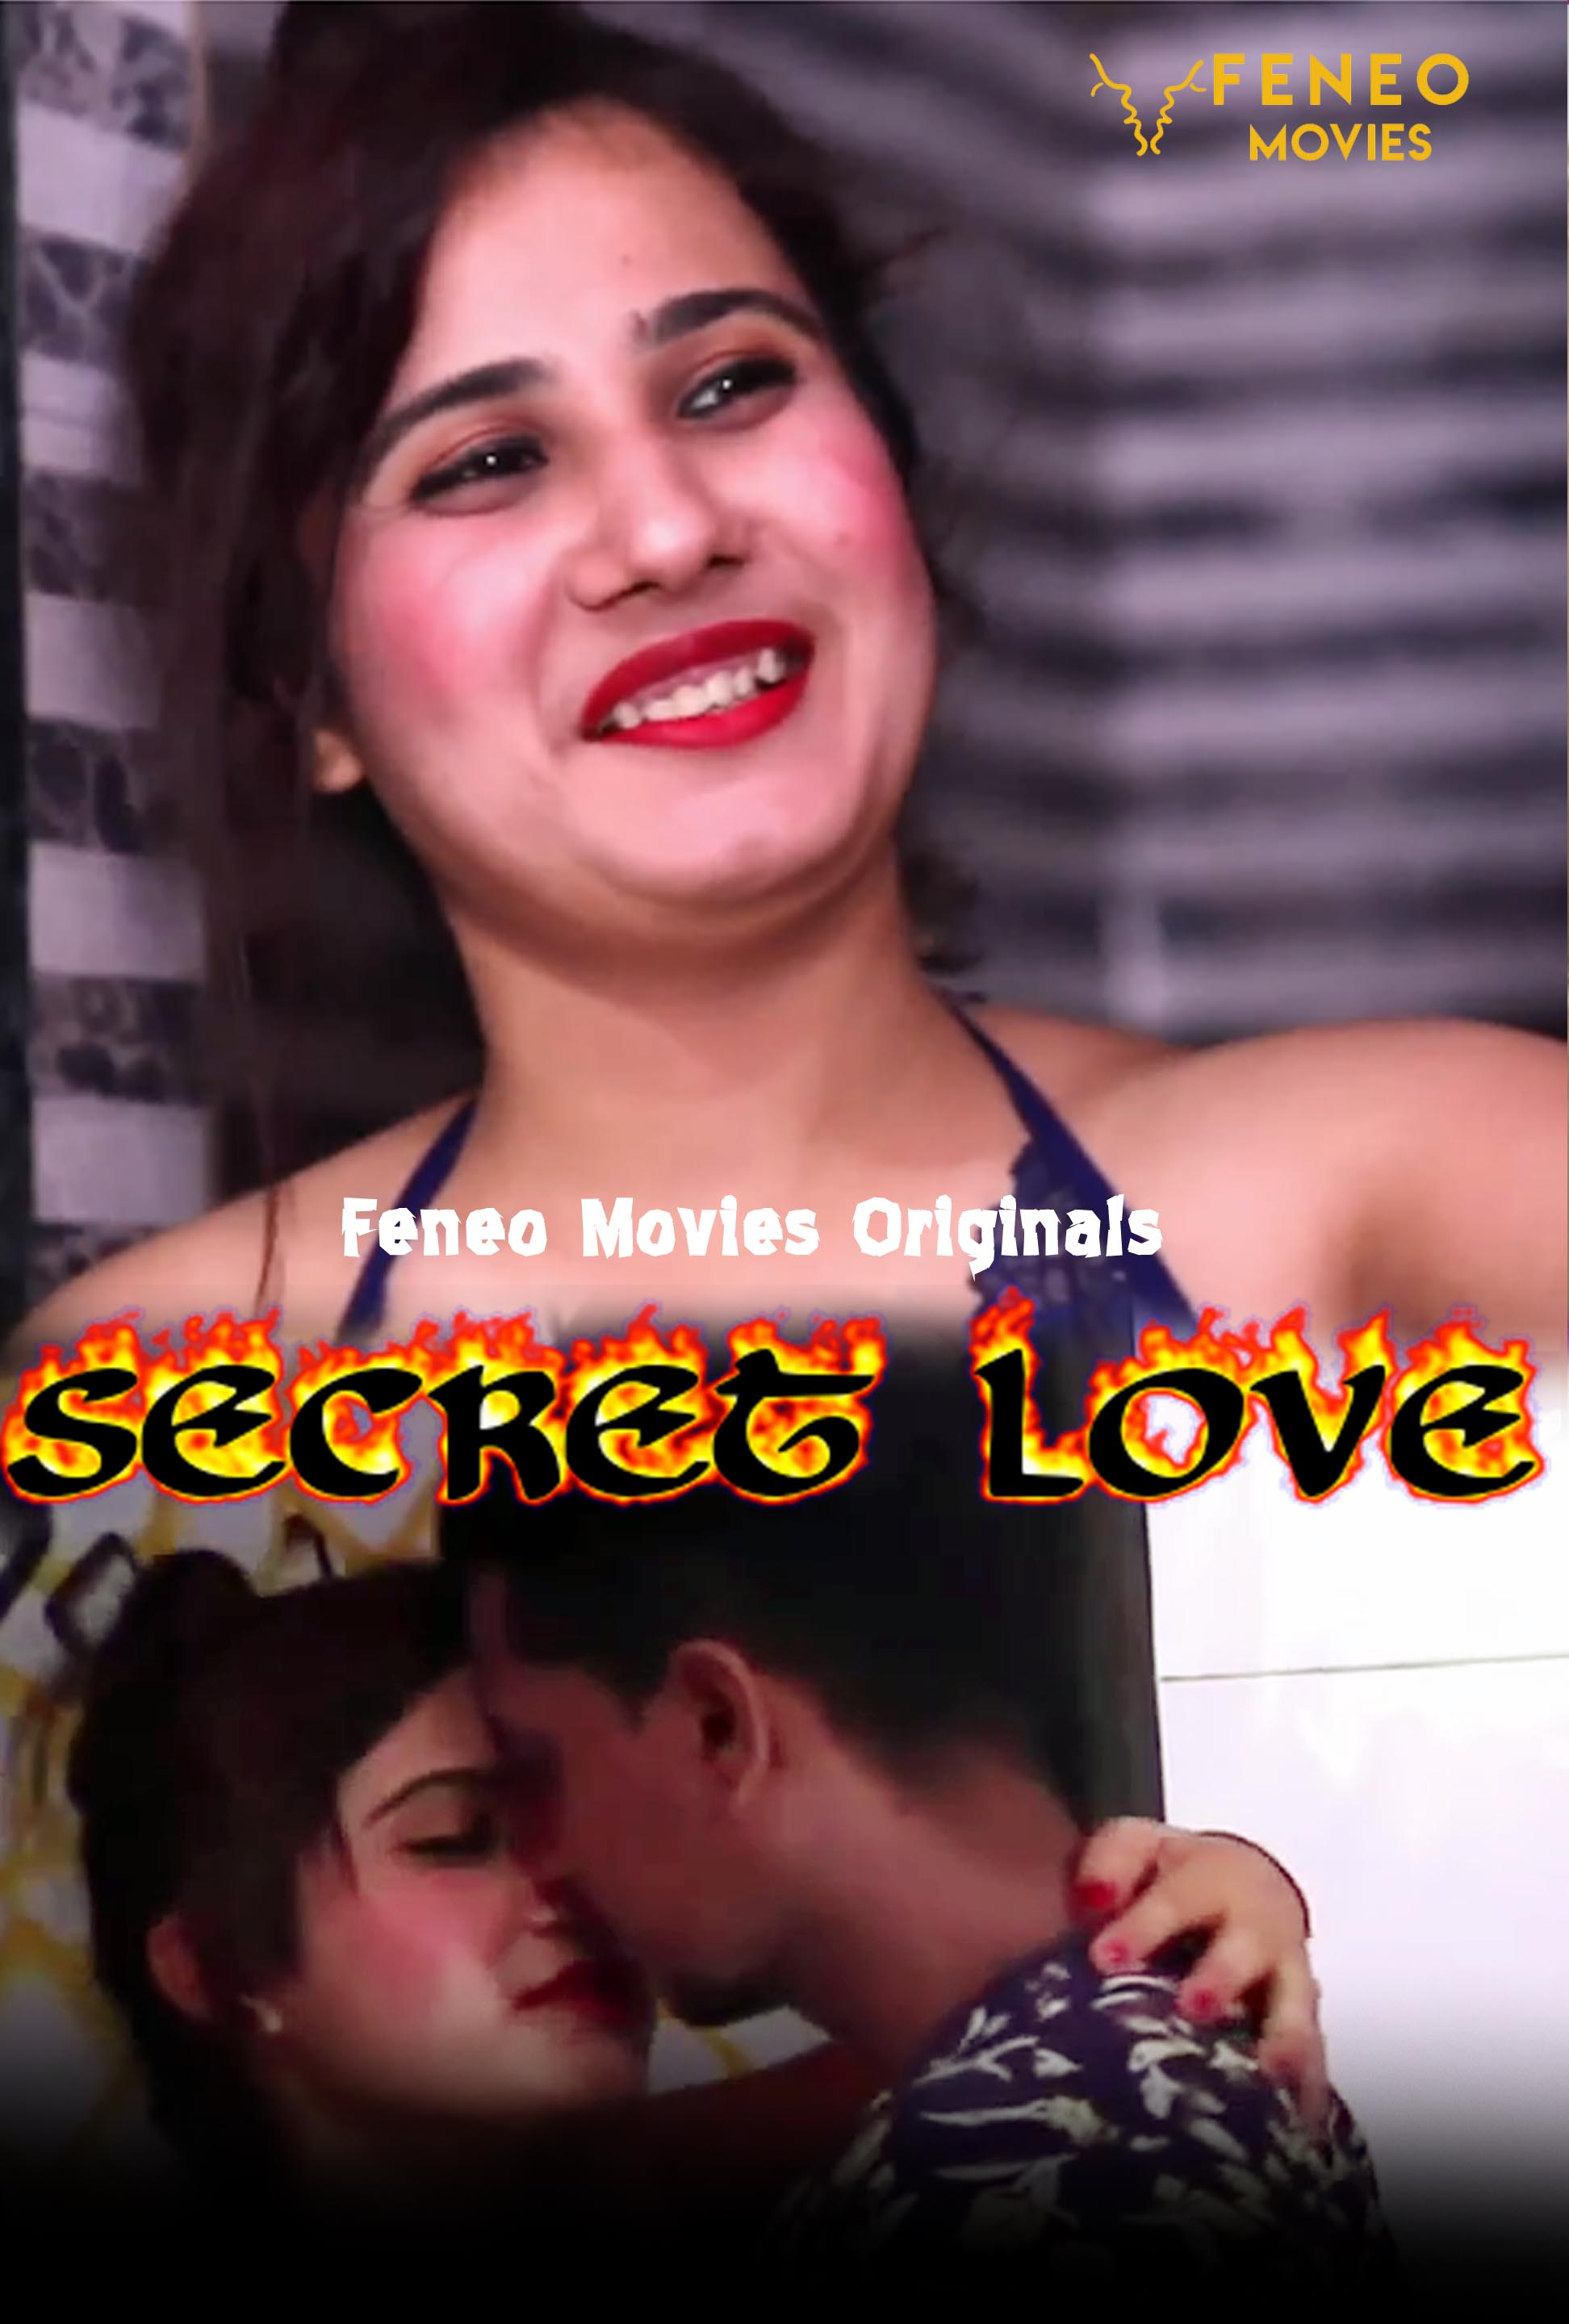 Secret Love 2020 Hindi S01E03 Feneomovies 720p HDRip 230MB x264